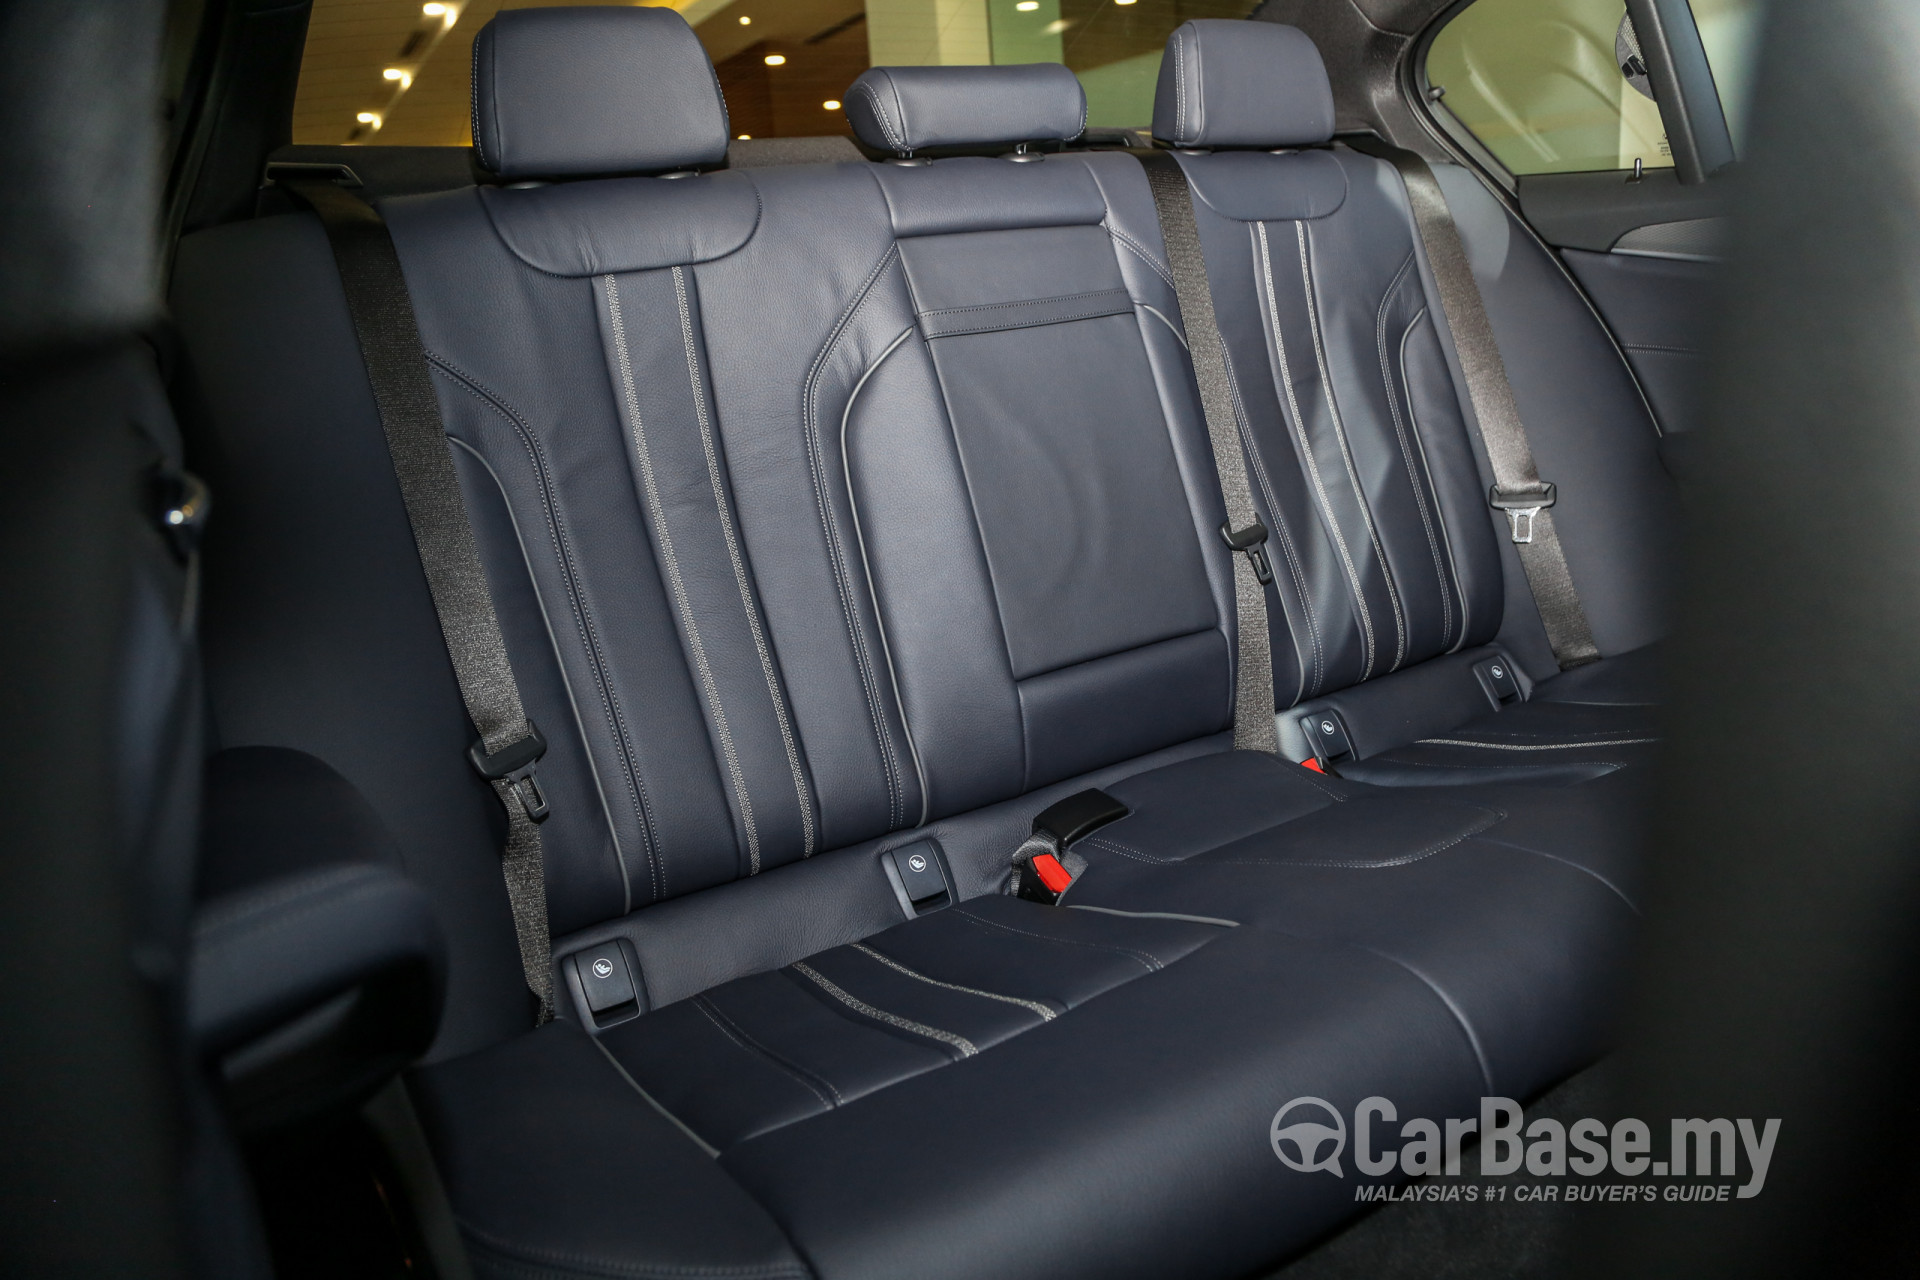 BMW 5 Series G30 (2017) Interior Image #56321 in Malaysia - Reviews